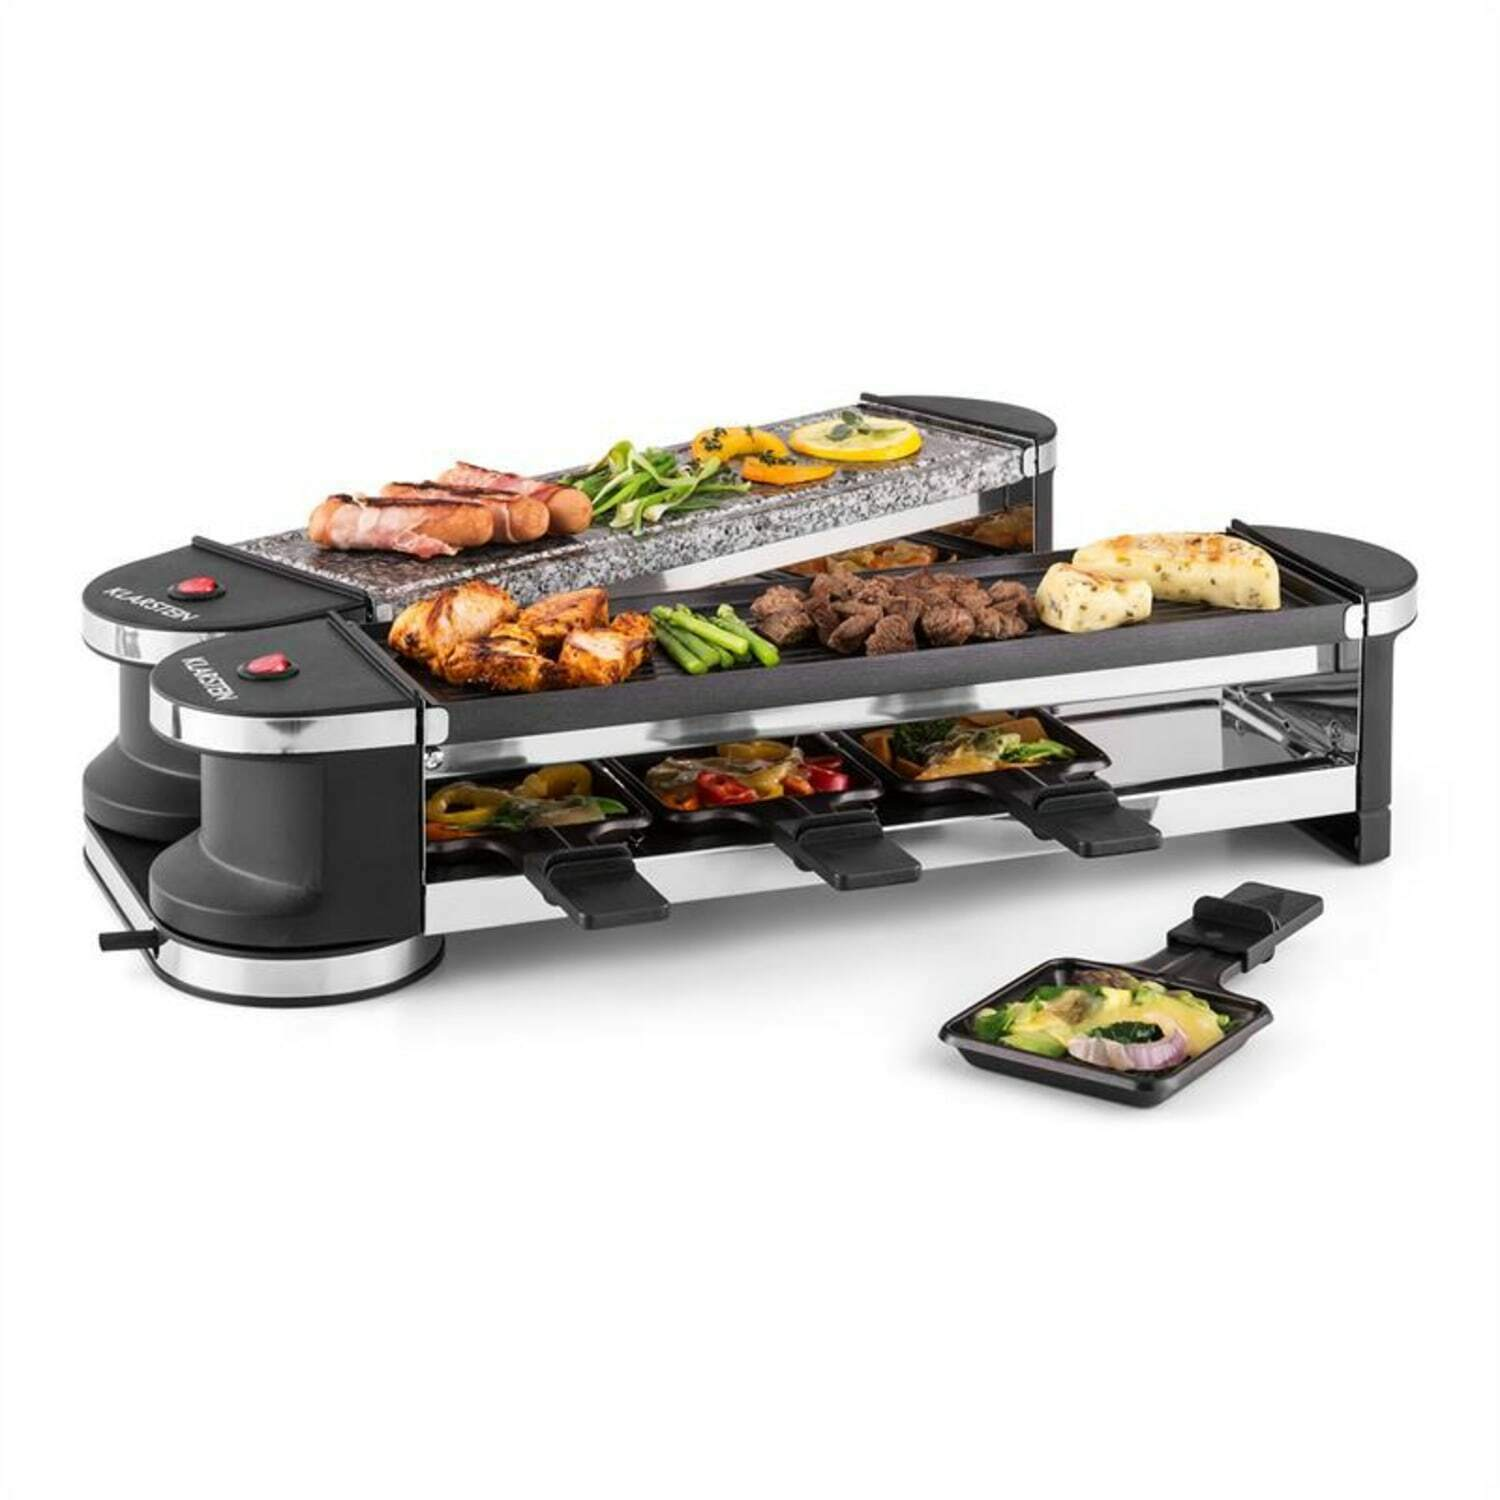 raclette grill hei er stein raclettegrill f r 8 personen. Black Bedroom Furniture Sets. Home Design Ideas